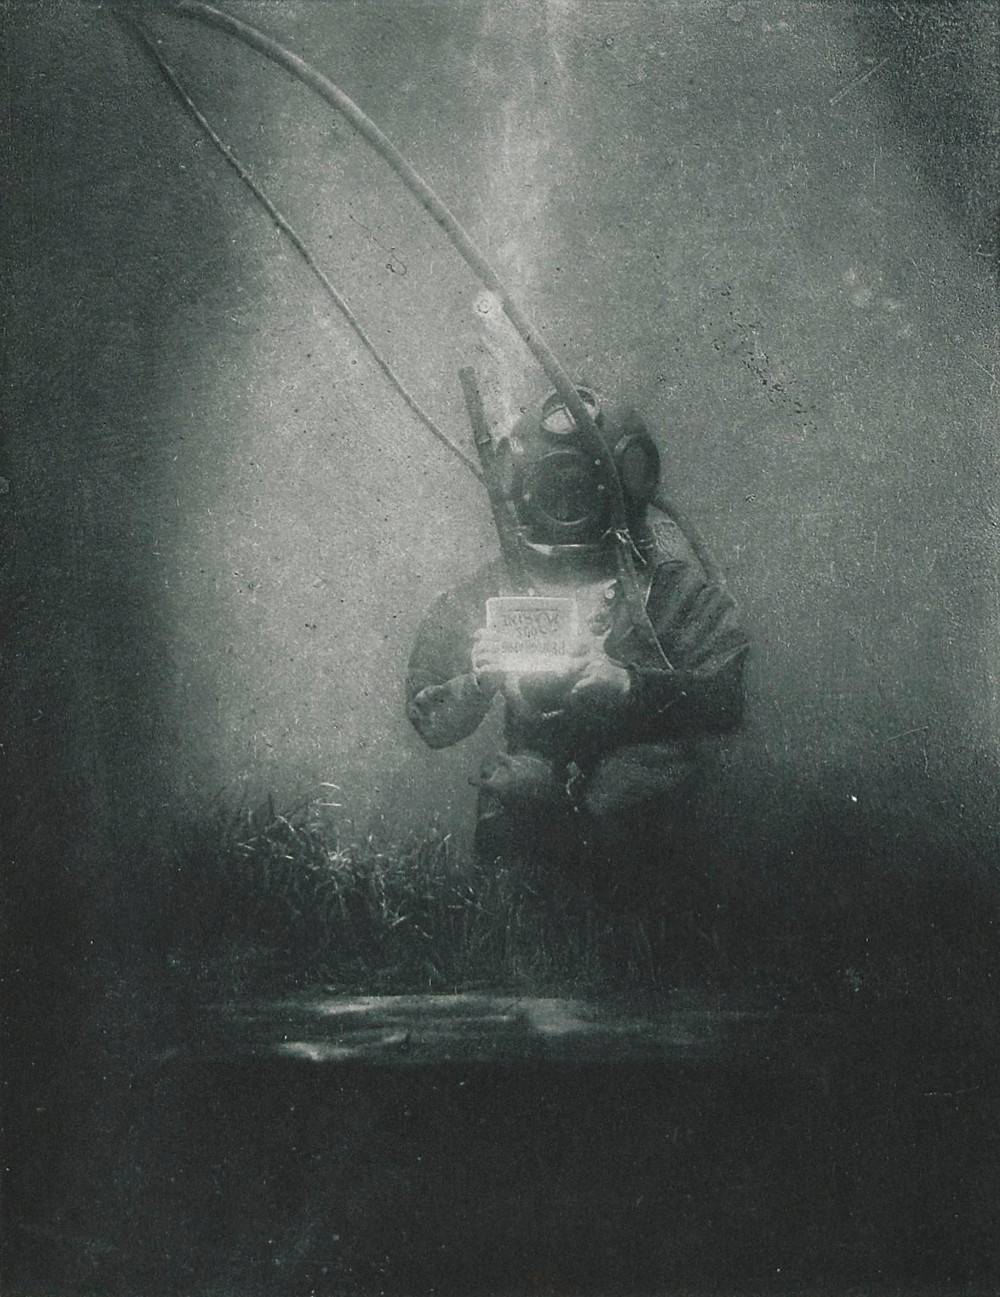 Emil Racovitza as diver at Observatoire océanologique de Banyuls-sur-Mer, 1899, picture by Louis Boutan